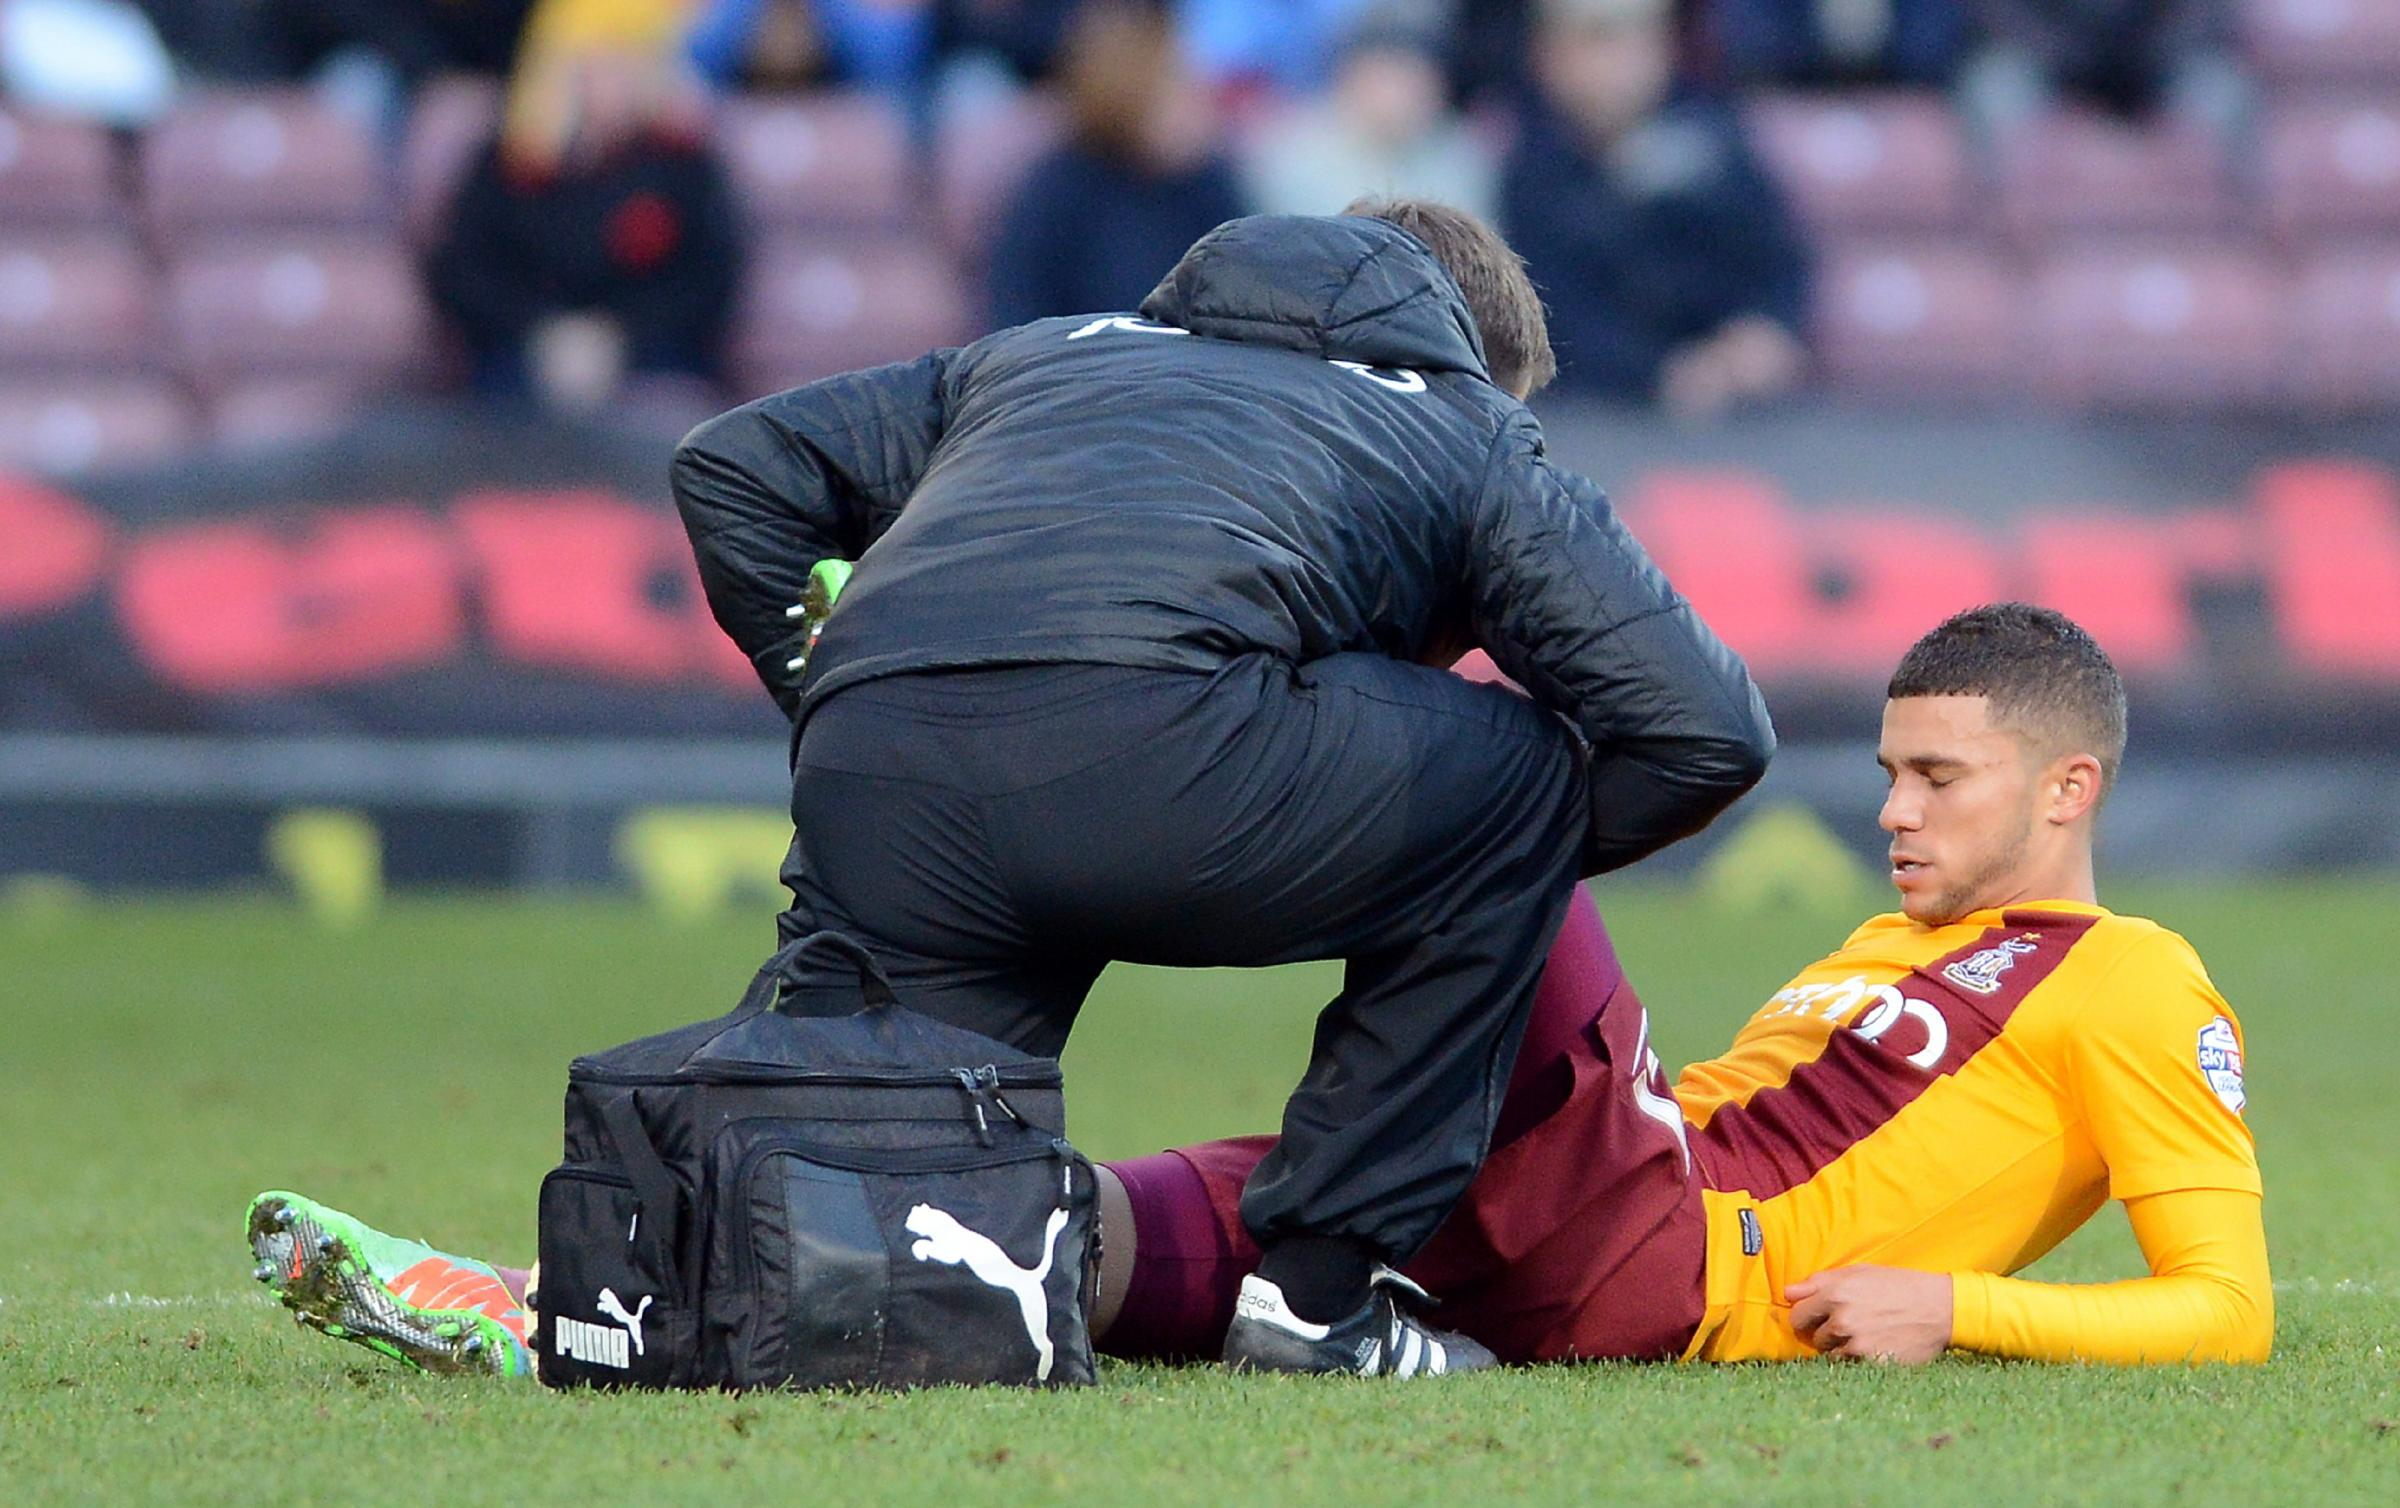 Nahki Wells is still suffering from a hamstring injury - but boss Phil Parkinson admits the player is not in the right state of mind to play due to constant transfer speculation